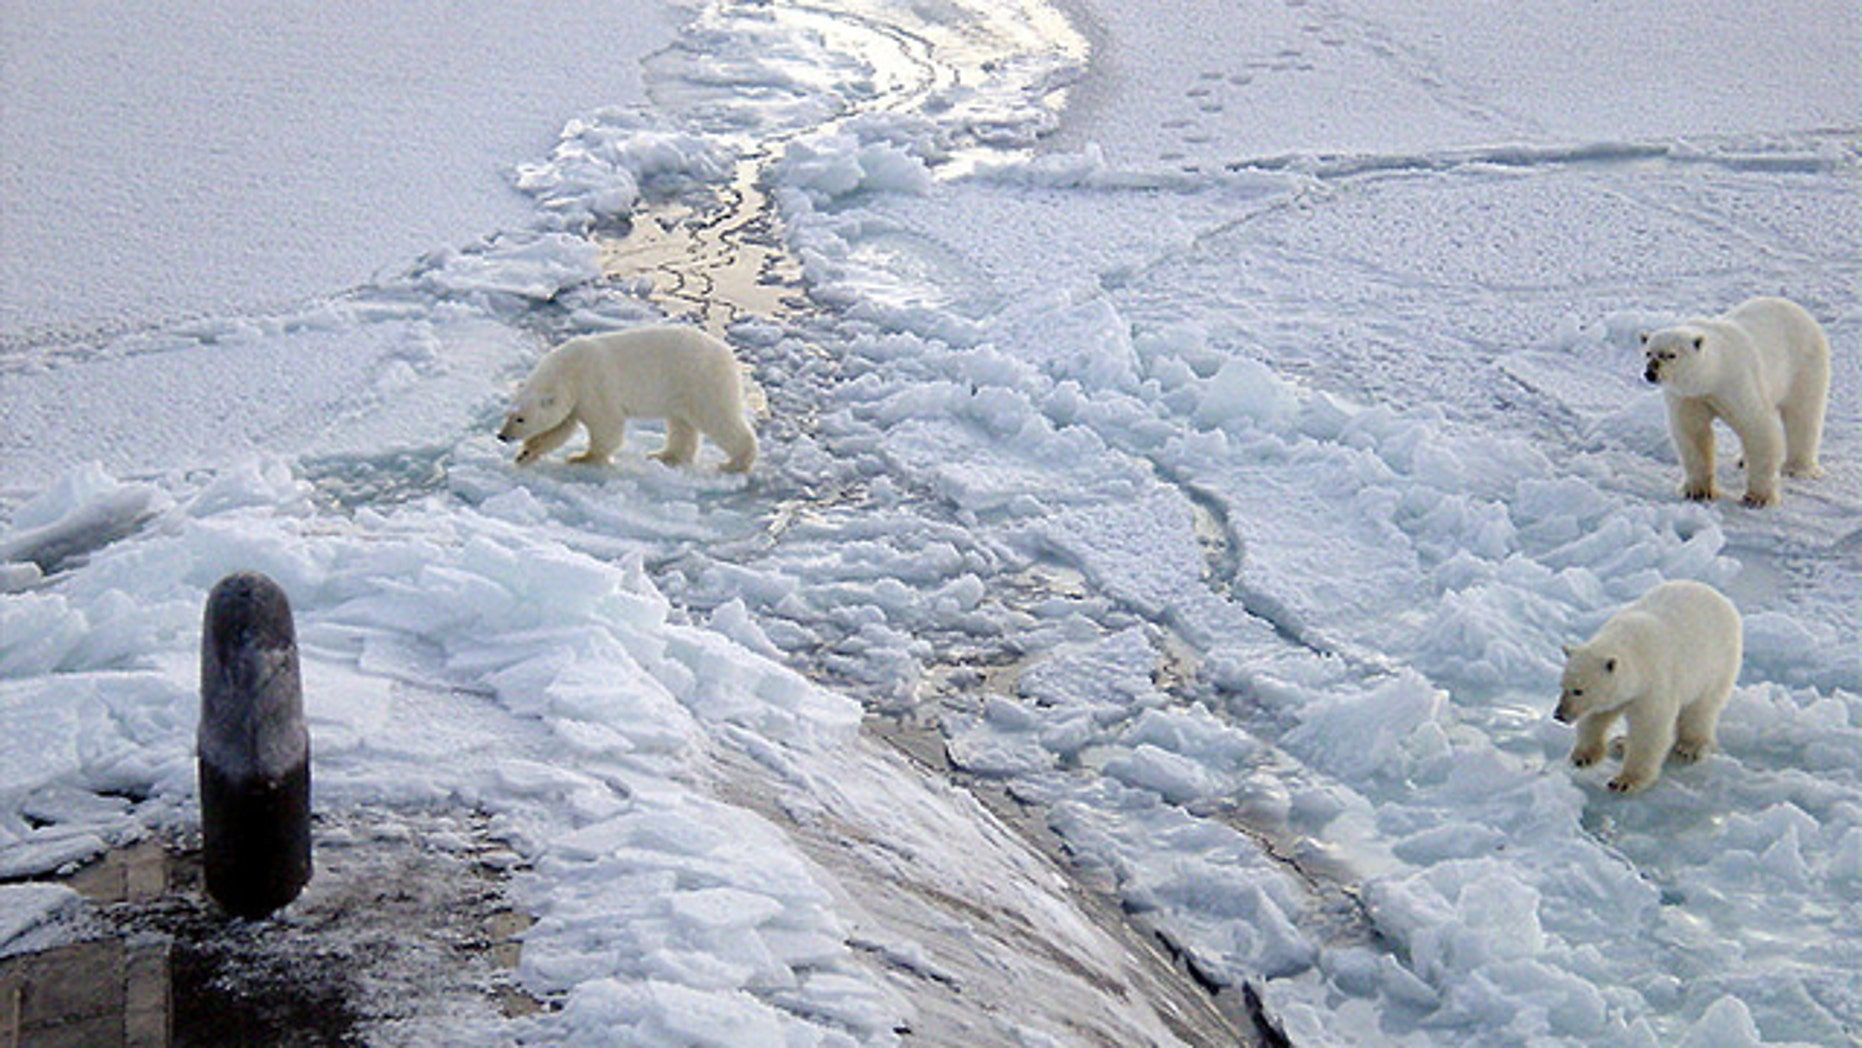 The polar bear has become the poster child for the global warming movement. In May 2008, the U.S. classified the polar bear as a threatened species, the first with its survival at risk due to global warming.